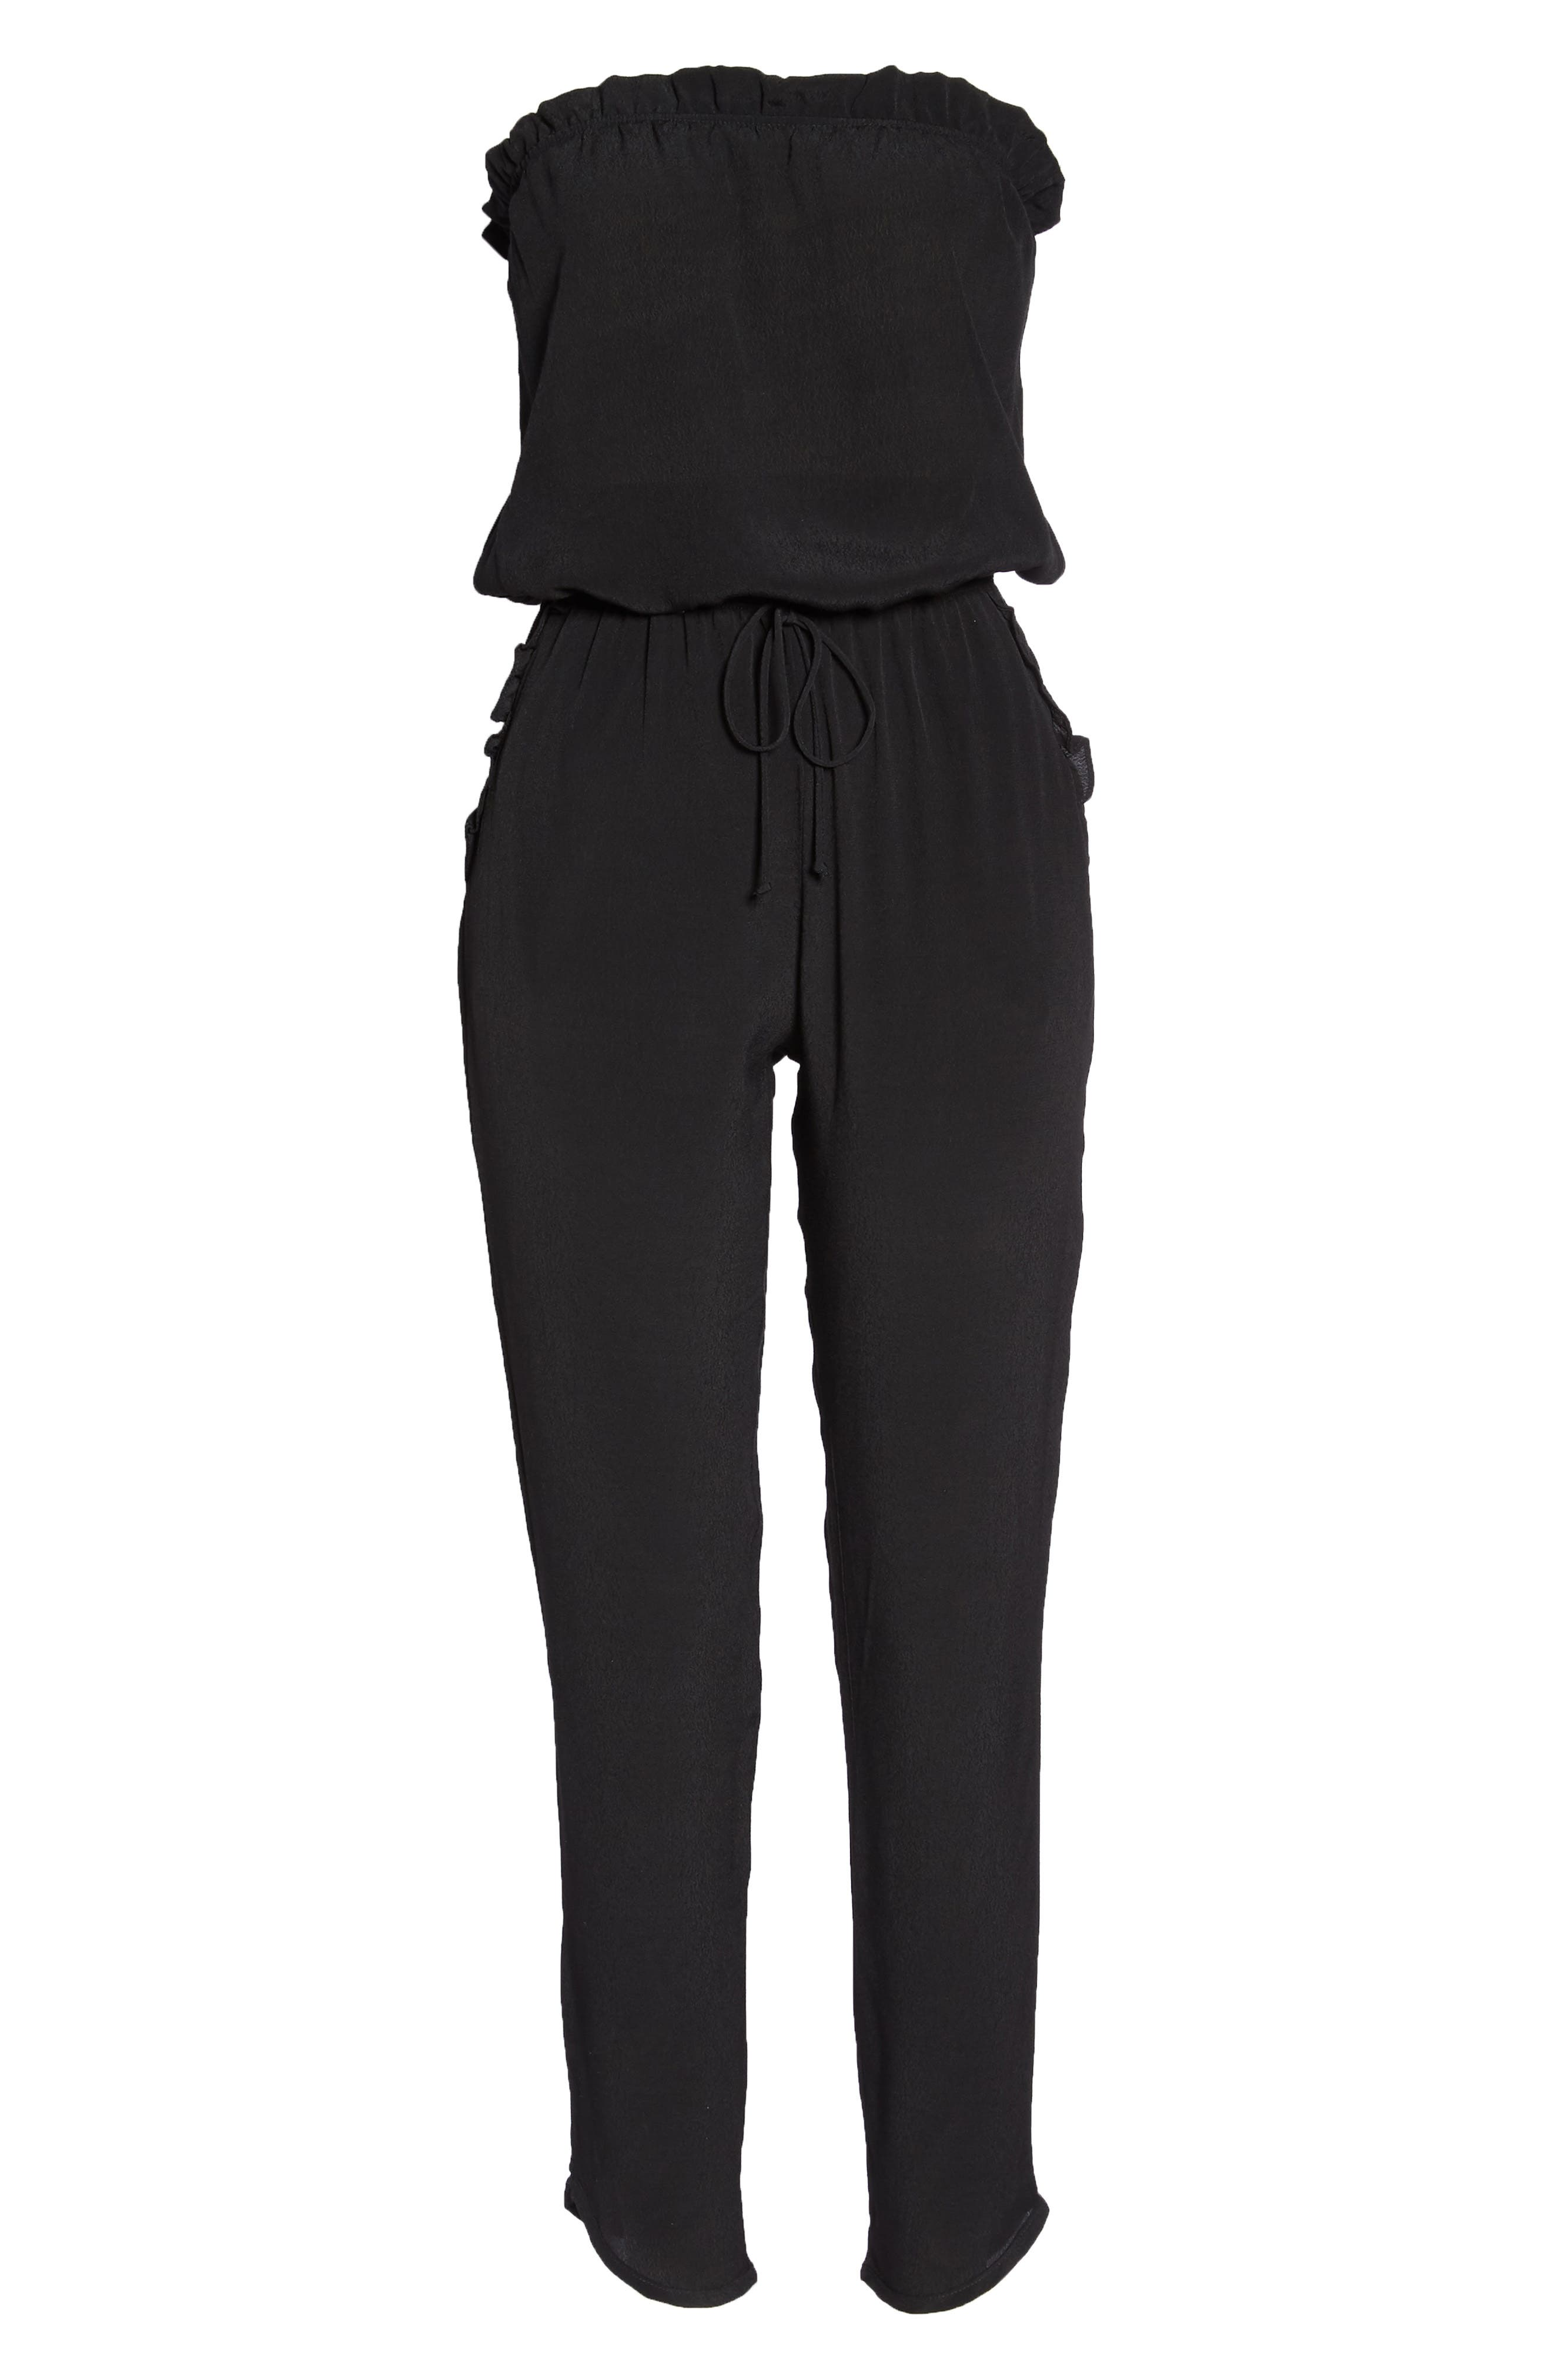 Strapless Jumpsuit,                             Alternate thumbnail 7, color,                             BLACK